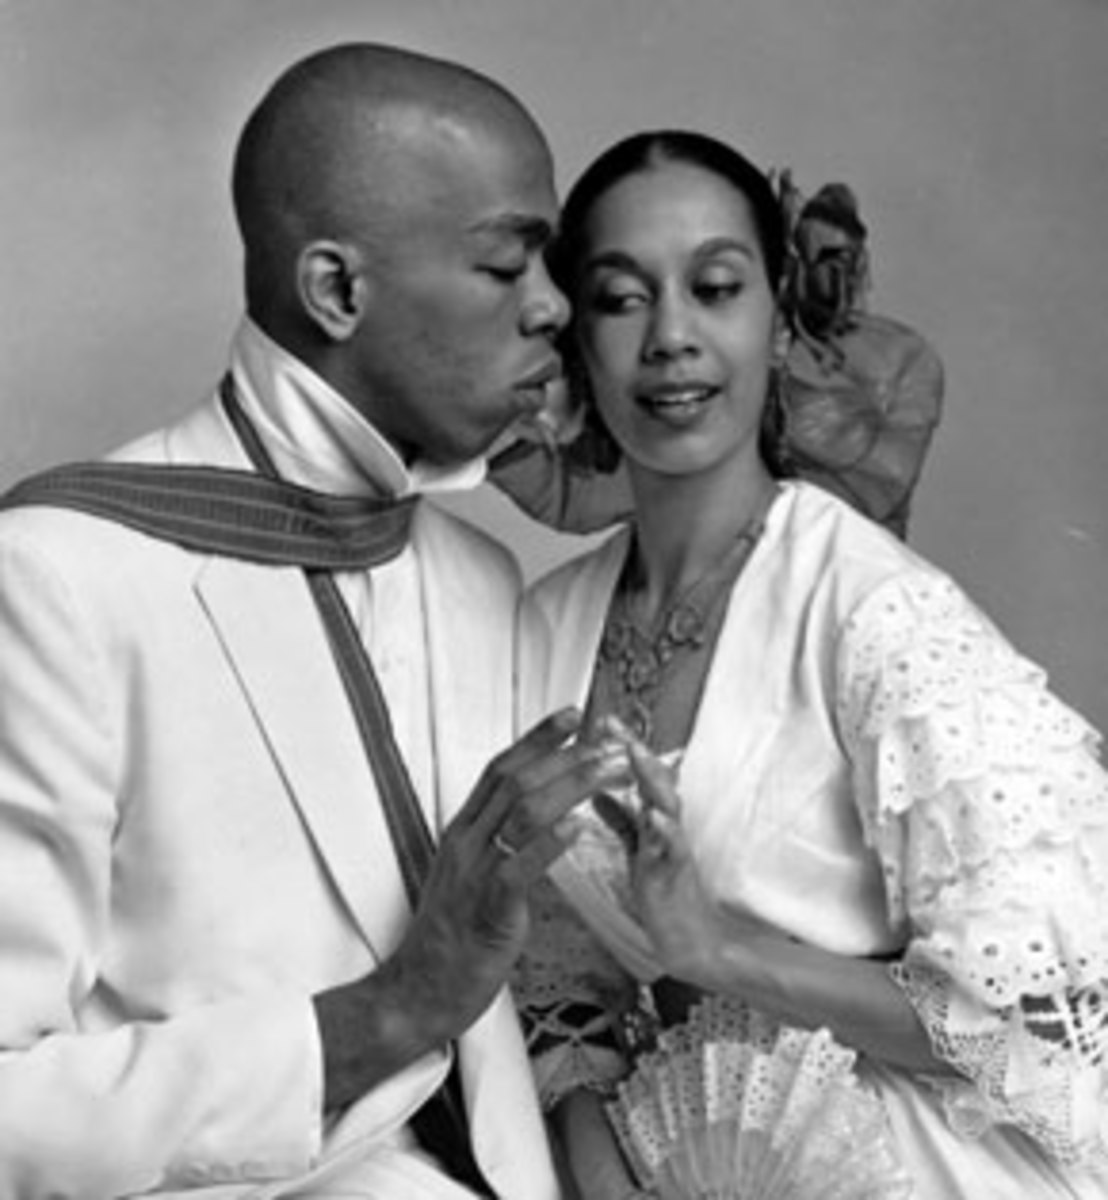 """It was in the 1954 Broadway musical """"House of Flowers"""", where Holder met fellow dancer Carmen DeLavallade, and the two were married in 1955."""